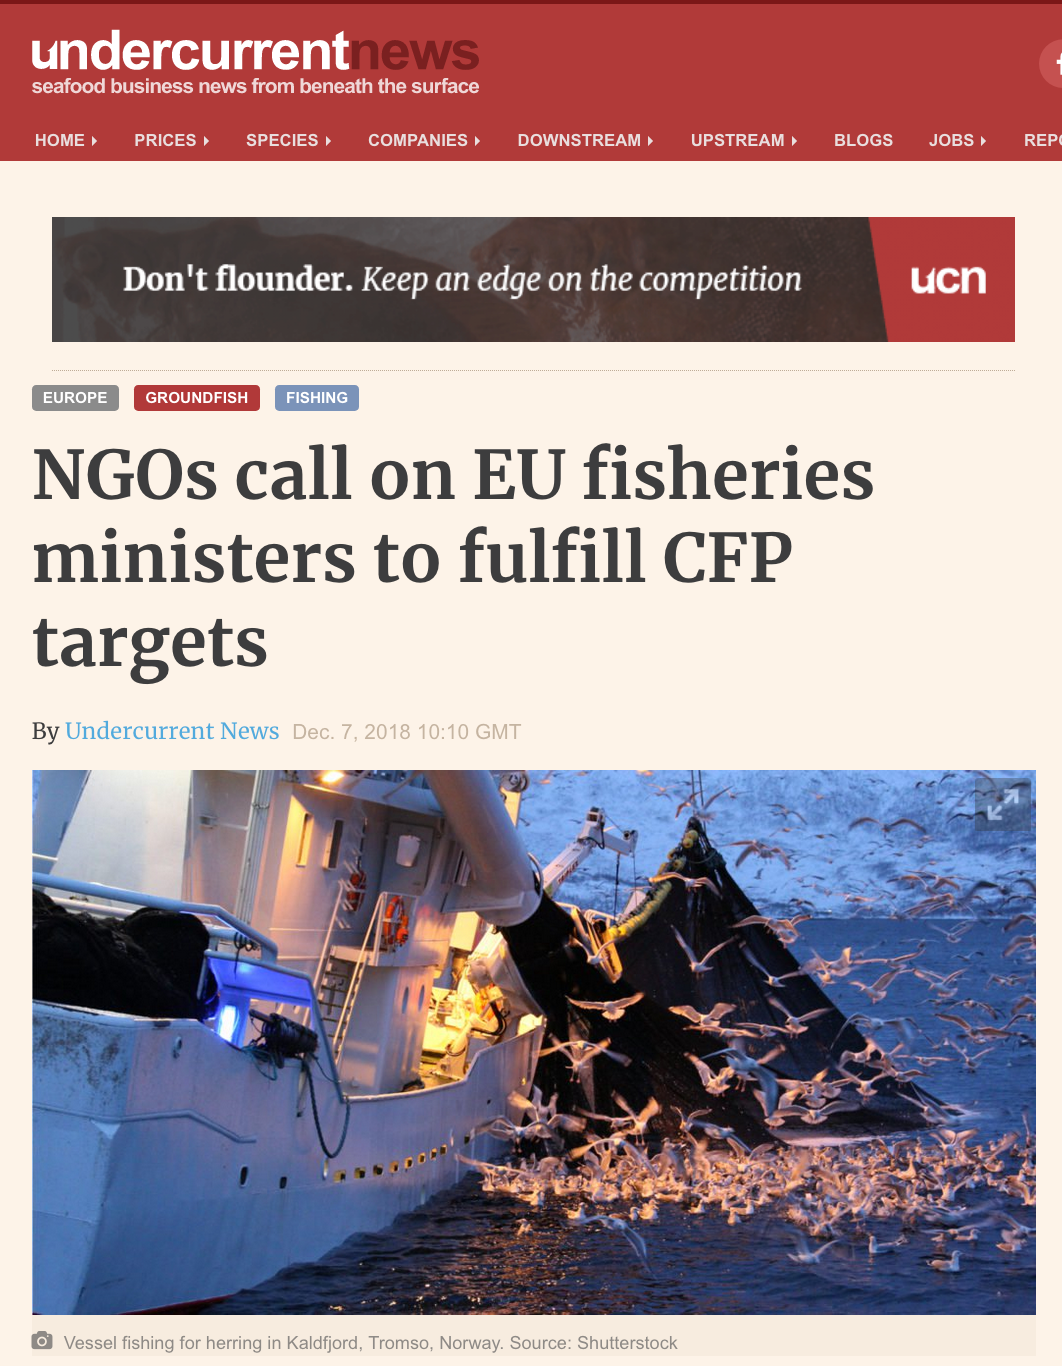 Undercurrent: NGOs call on EU fisheries ministers to fulfill CFP targets